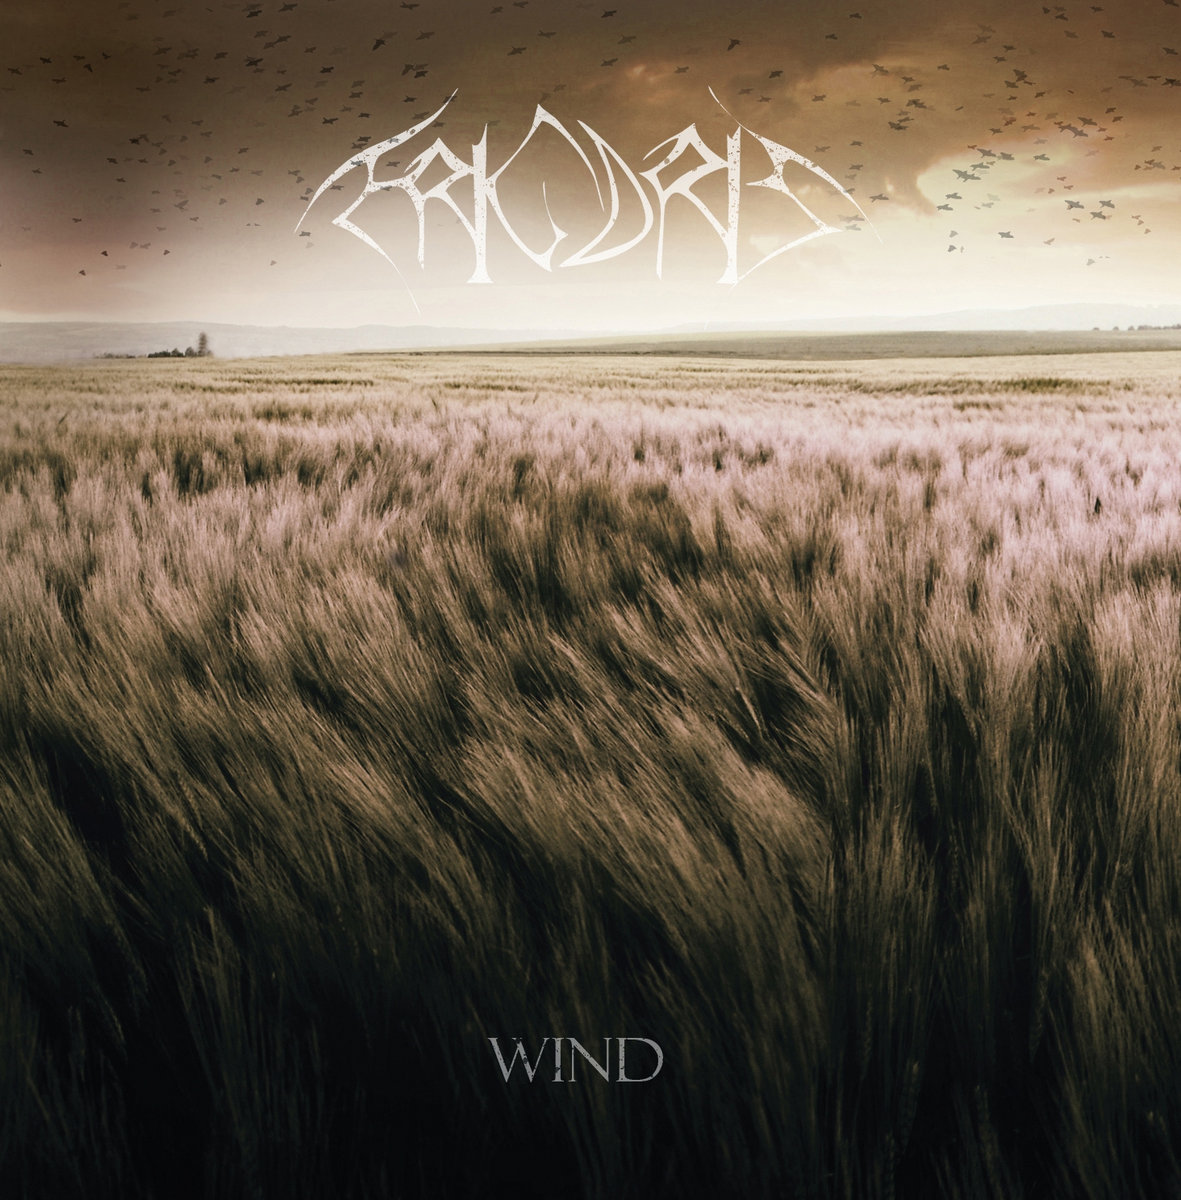 Frigoris - Wind (2013)